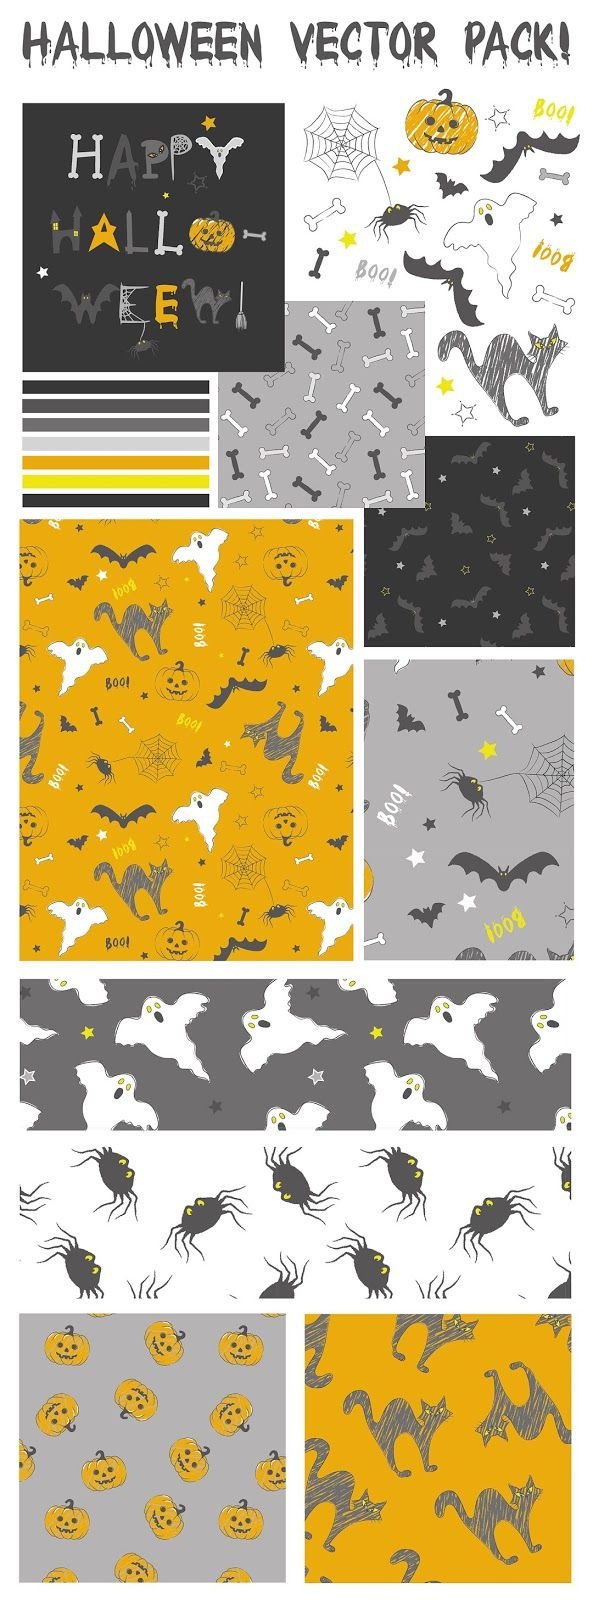 Emily Kiddy: Halloween Vector Pack